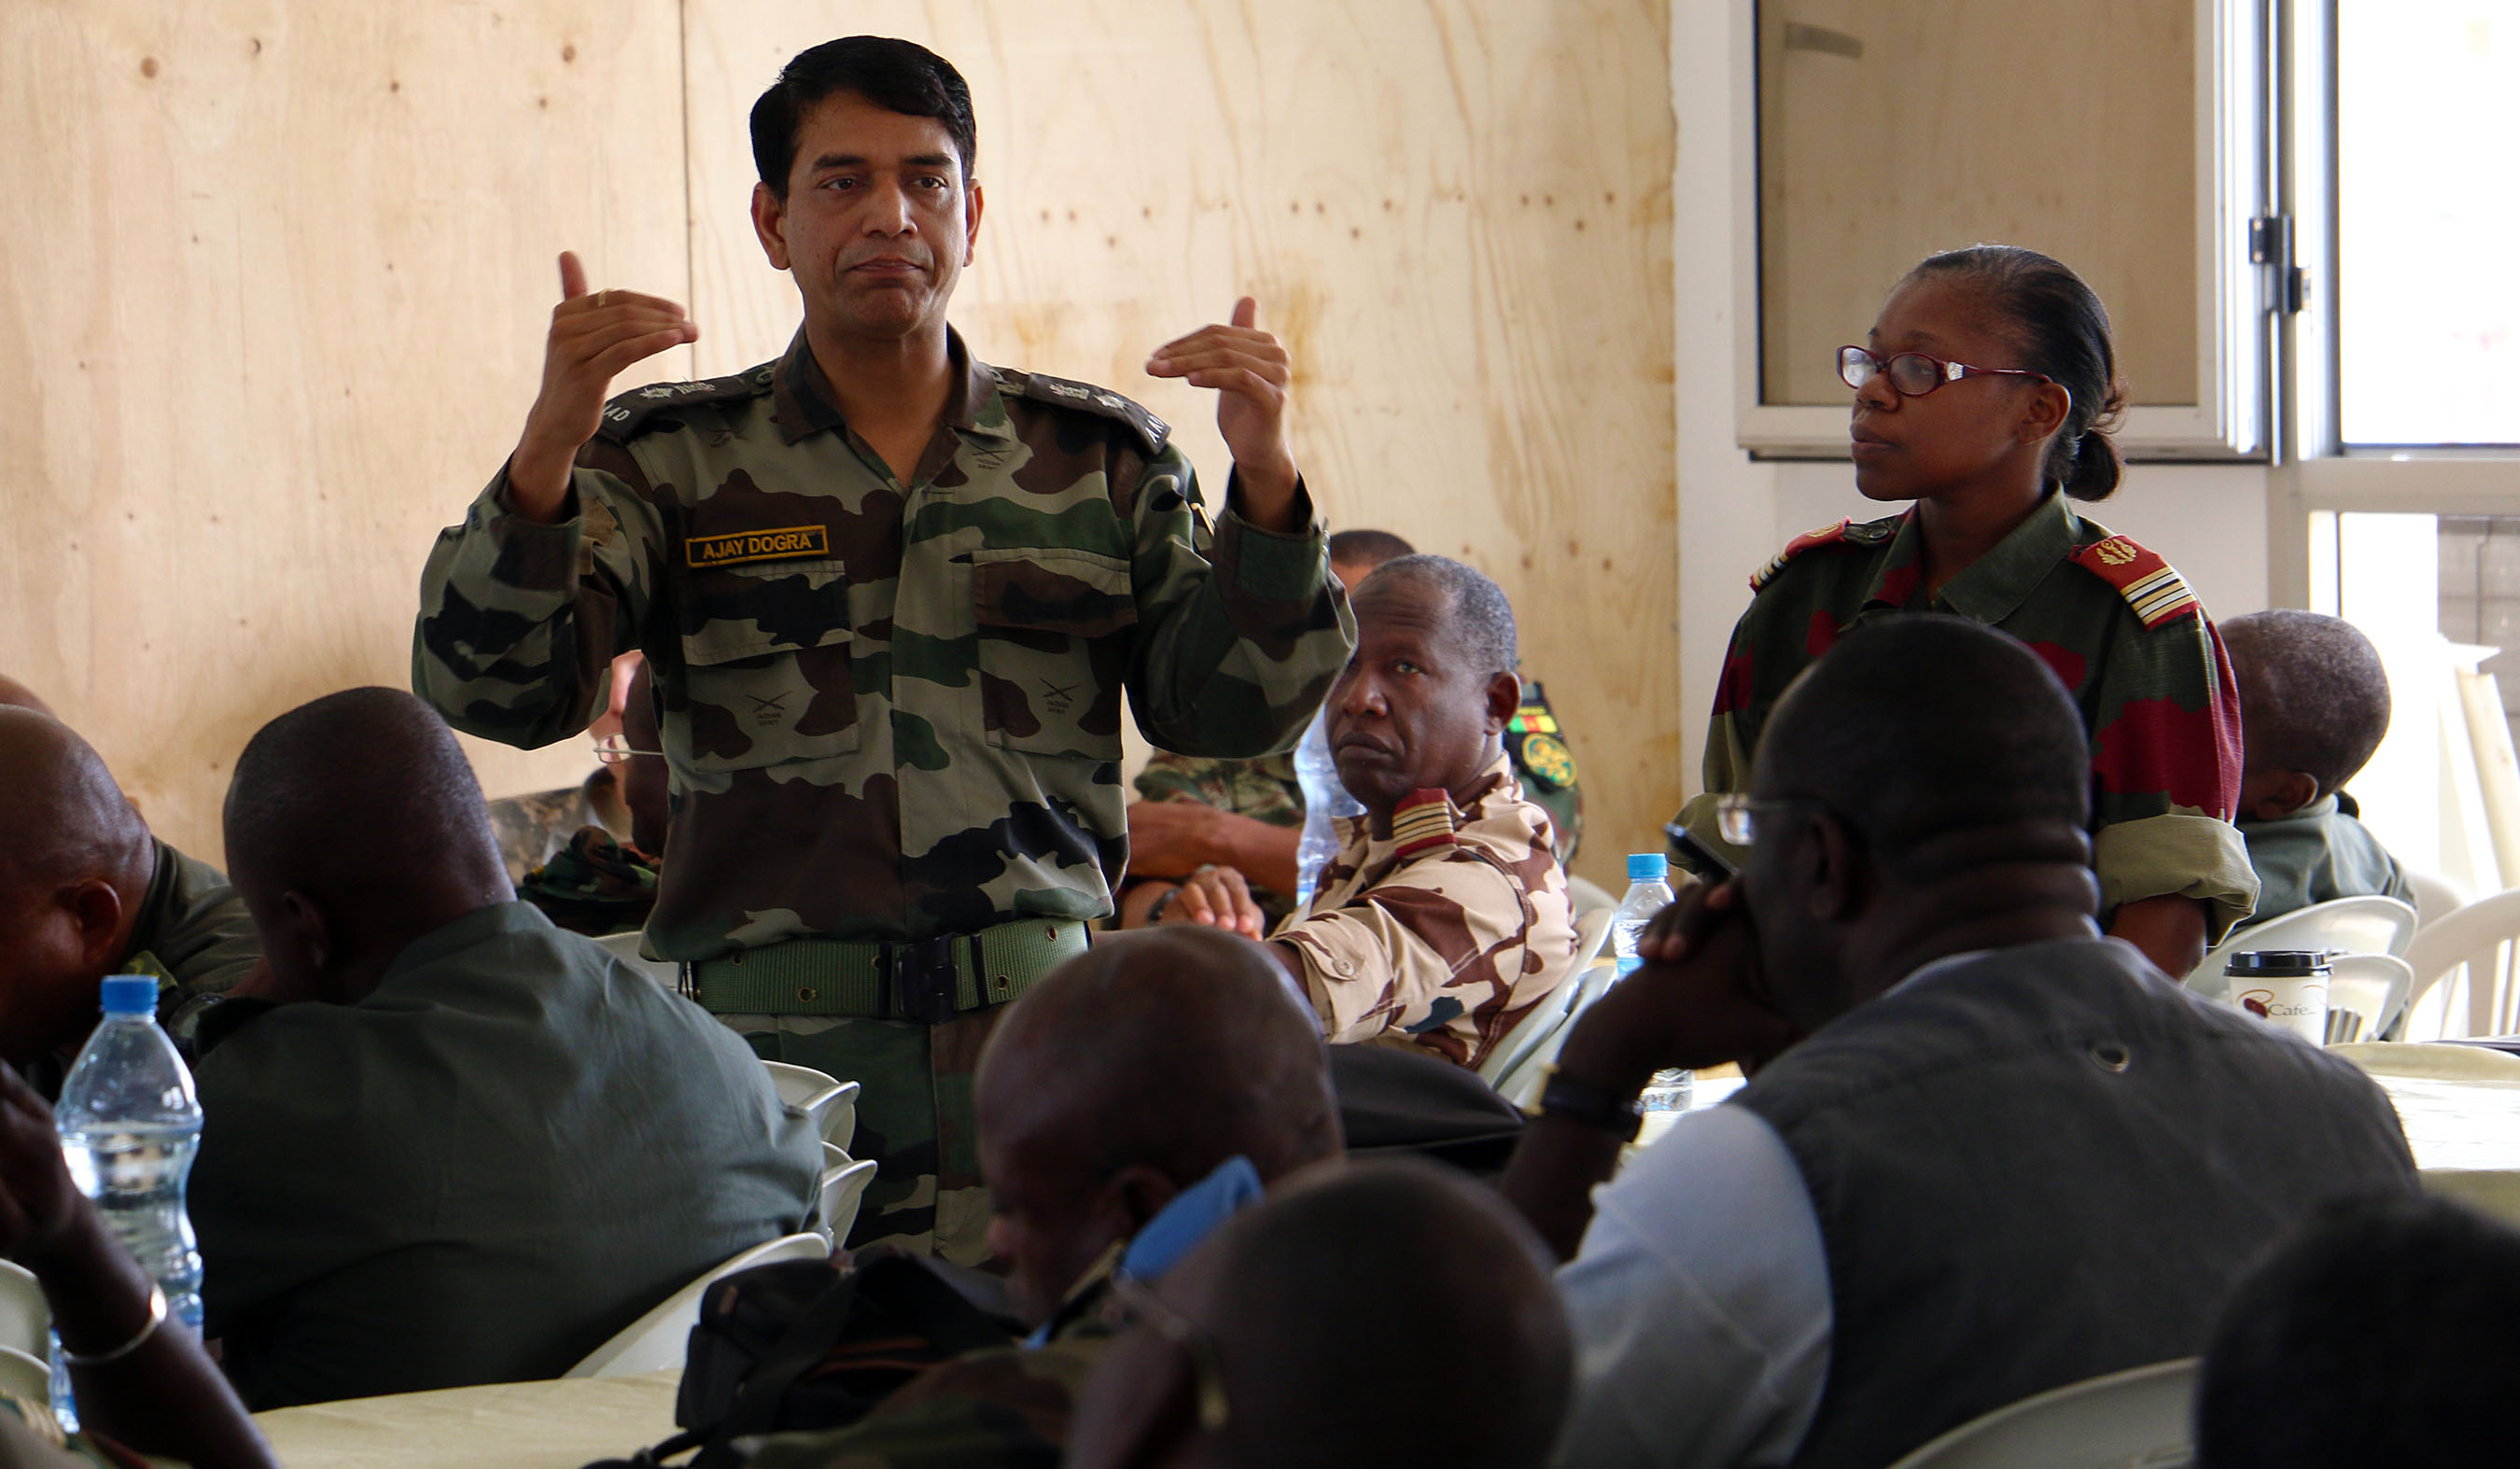 Indian Army Lt. Col. Ajay Dogra, military training officer with the United Nations Department of Peacekeeping Operations, teaches Central Accord 2016 participants about U.N. functions and procedures June 14, at the Cooperative Security Location in Libreville, Gabon. U.S. Army Africa's exercise Central Accord 2016 is an annual, combined, joint military exercise that brings together partner nations to practice and demonstrate proficiency in conducting peacekeeping operations. (U.S. Army Africa photo by Staff Sgt. Candace Mundt/Released)